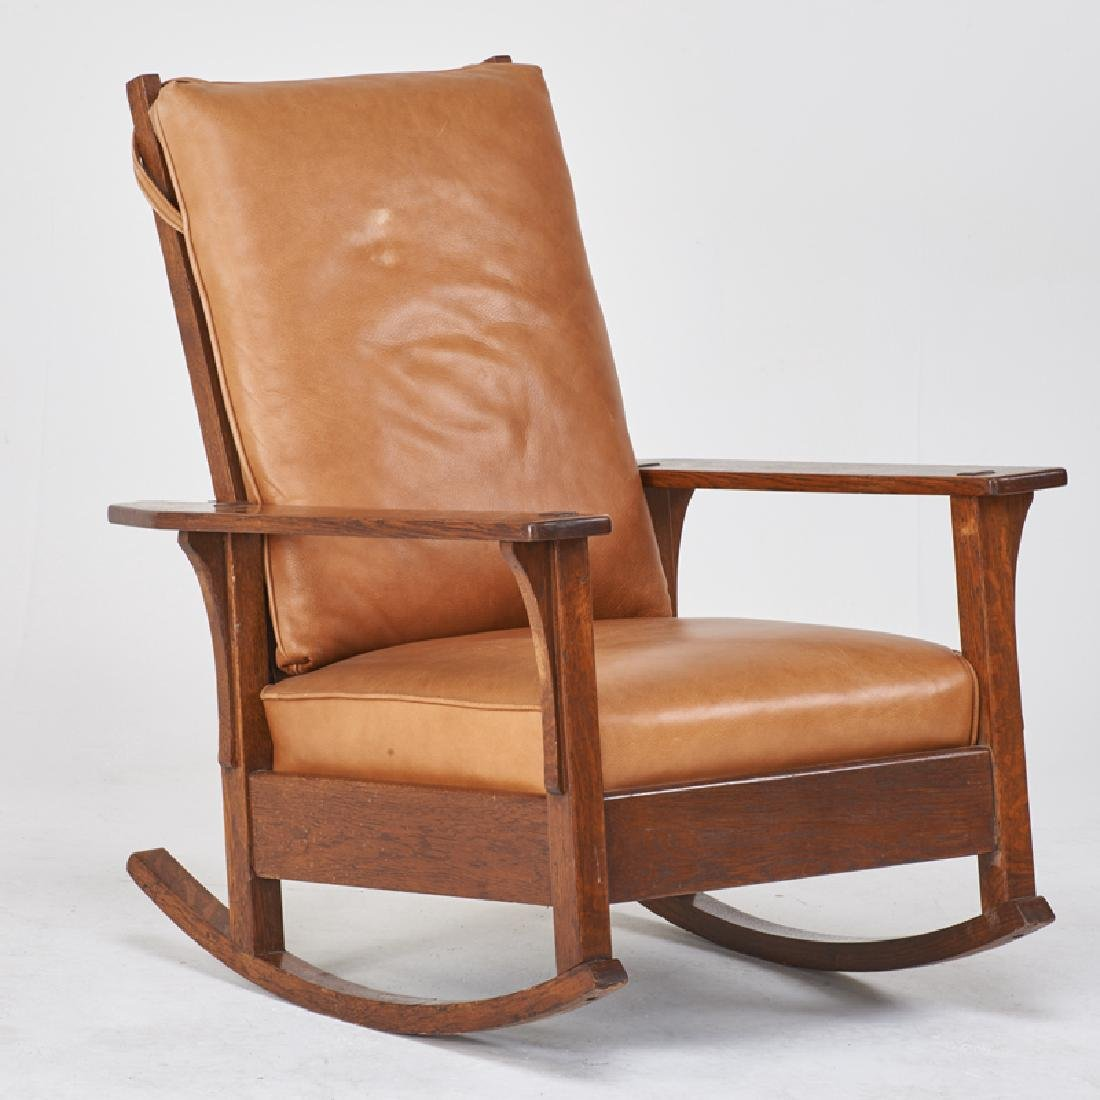 L. & J.G. STICKLEY